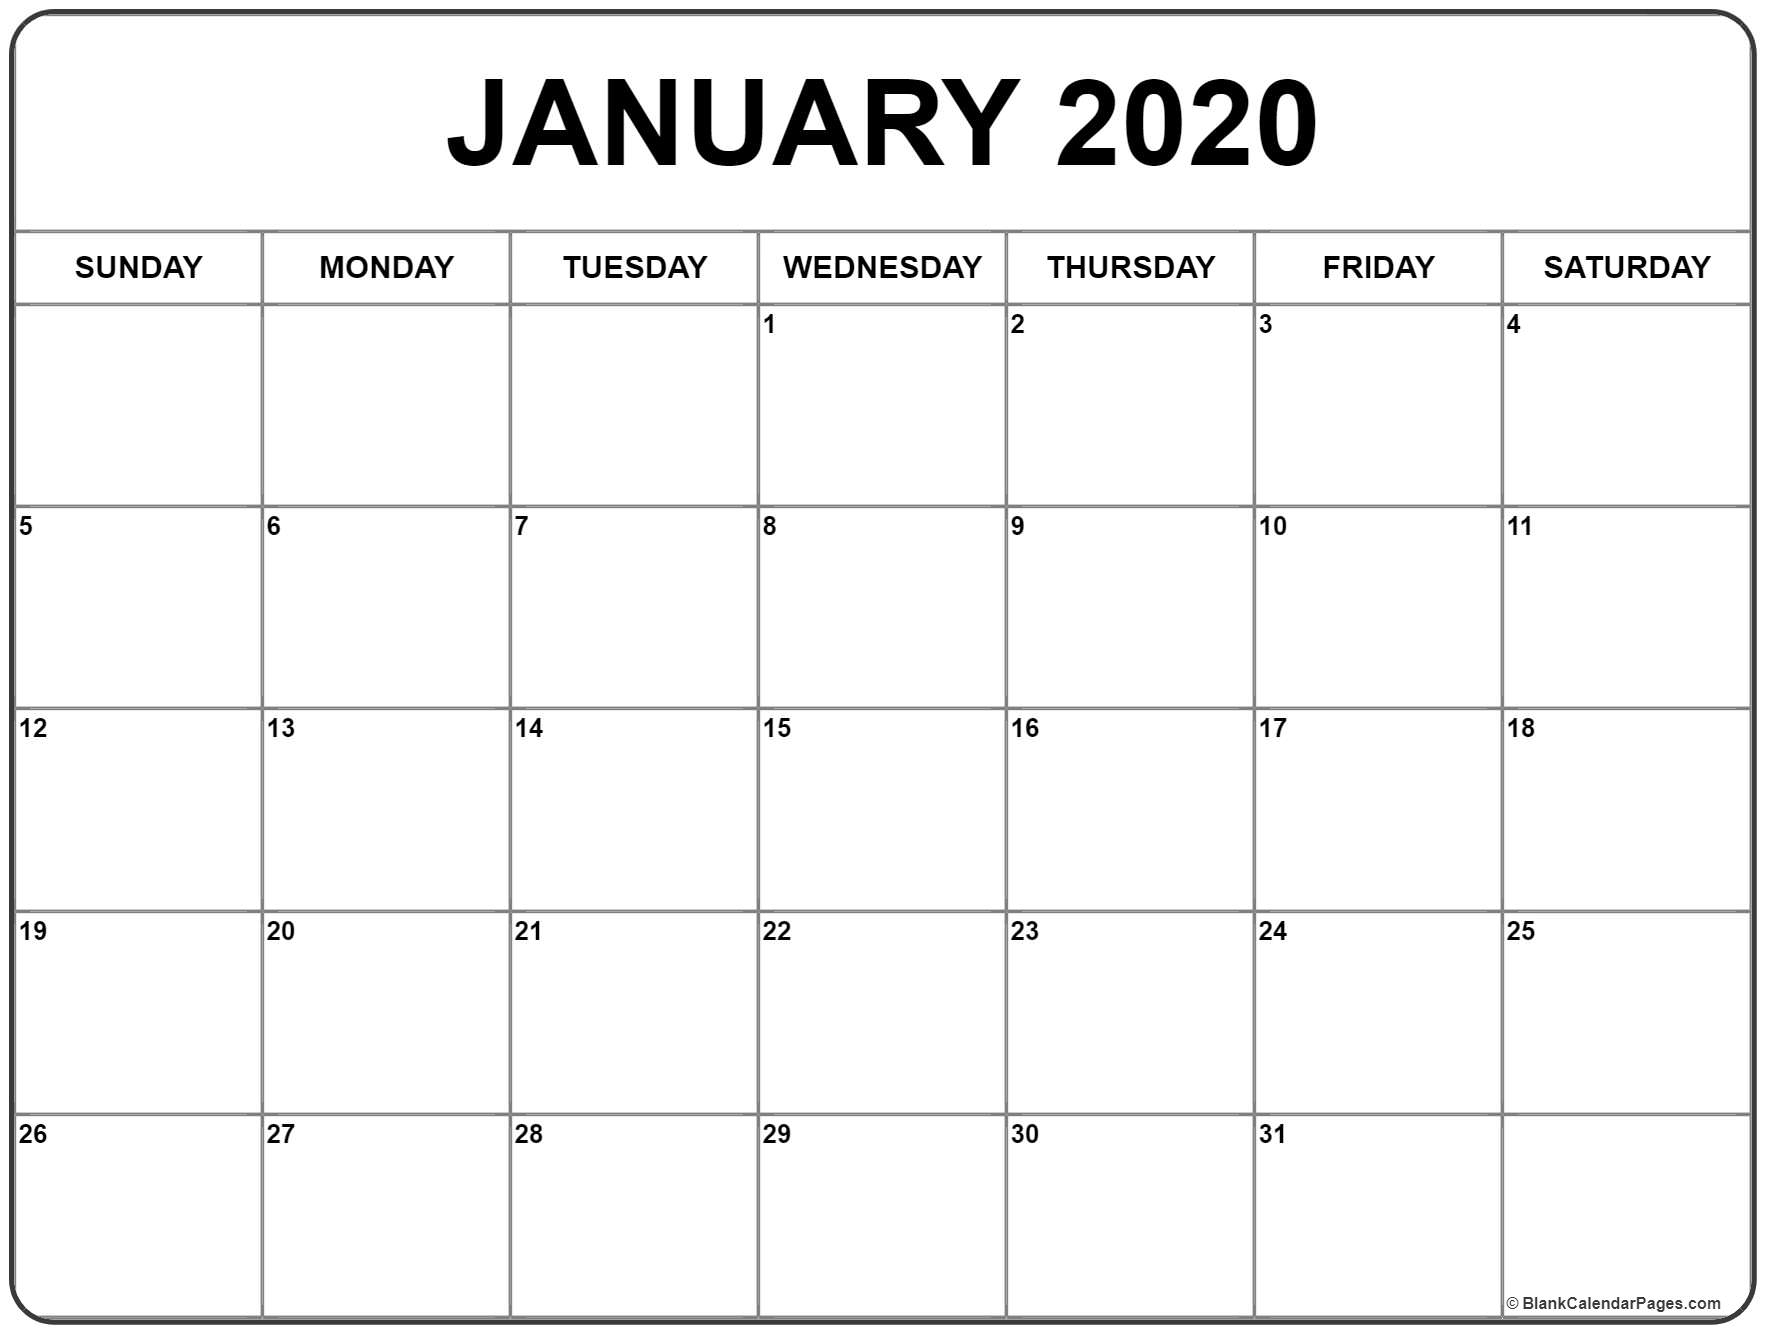 Calendar 2020 Printable Calendar Starting With Monday - Calendar throughout 2020 Printable Calendar Free That Start With Monday